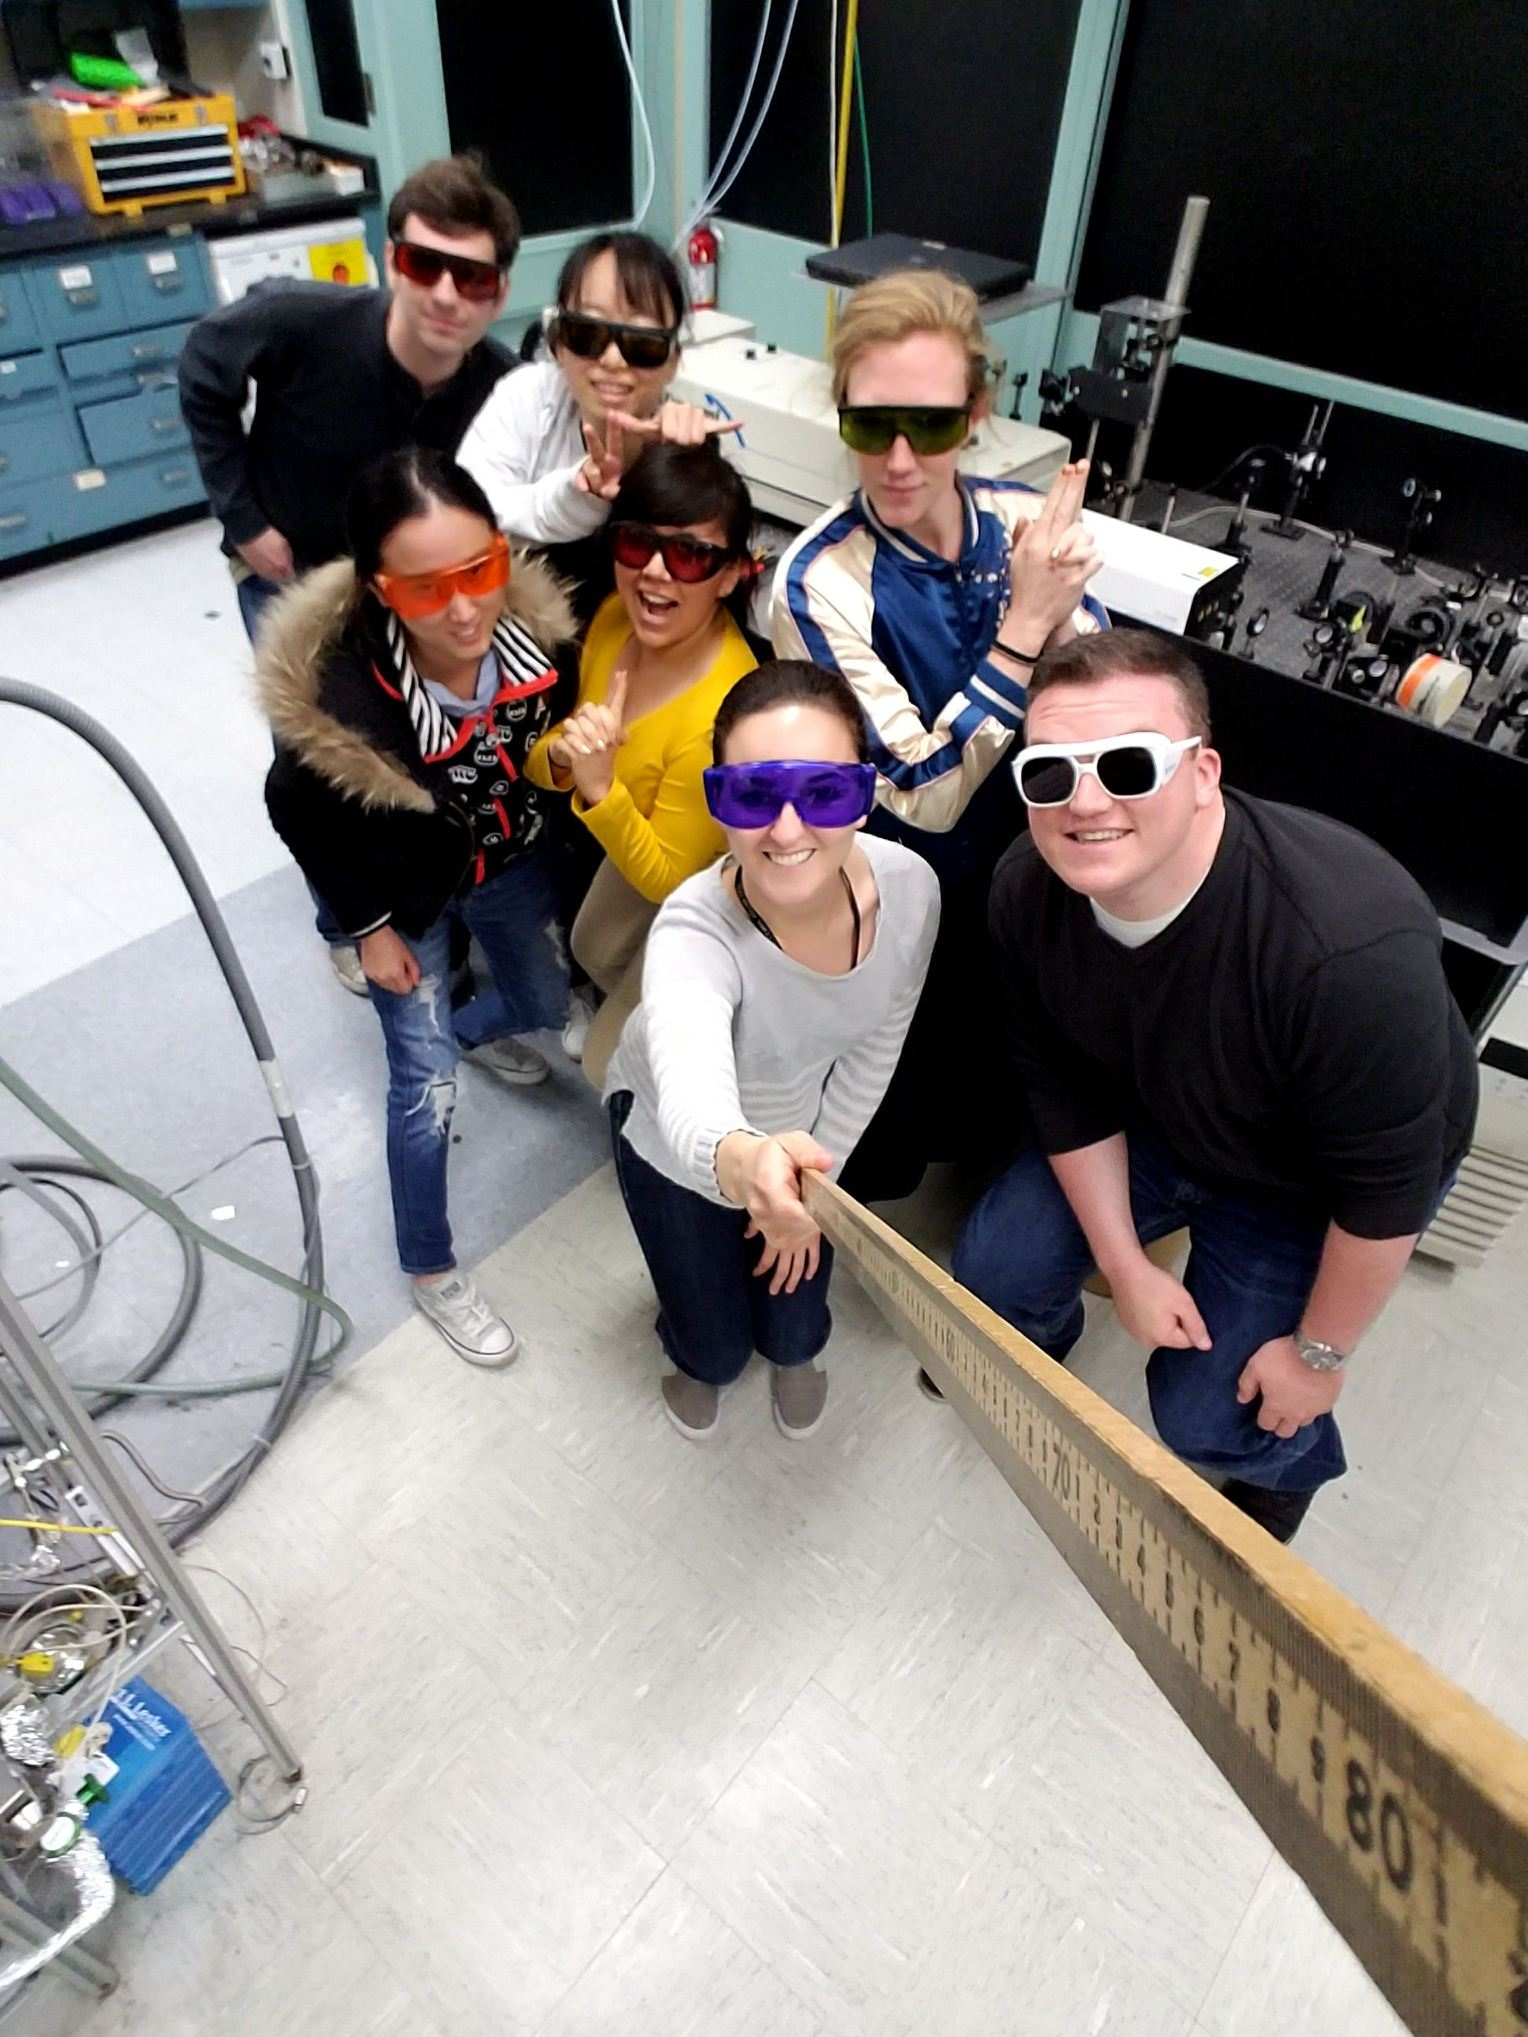 06/2017 - Group's photo wins the Safety Selfie Contest at Chemistry Safety Day 2017 at Stony Brook University.